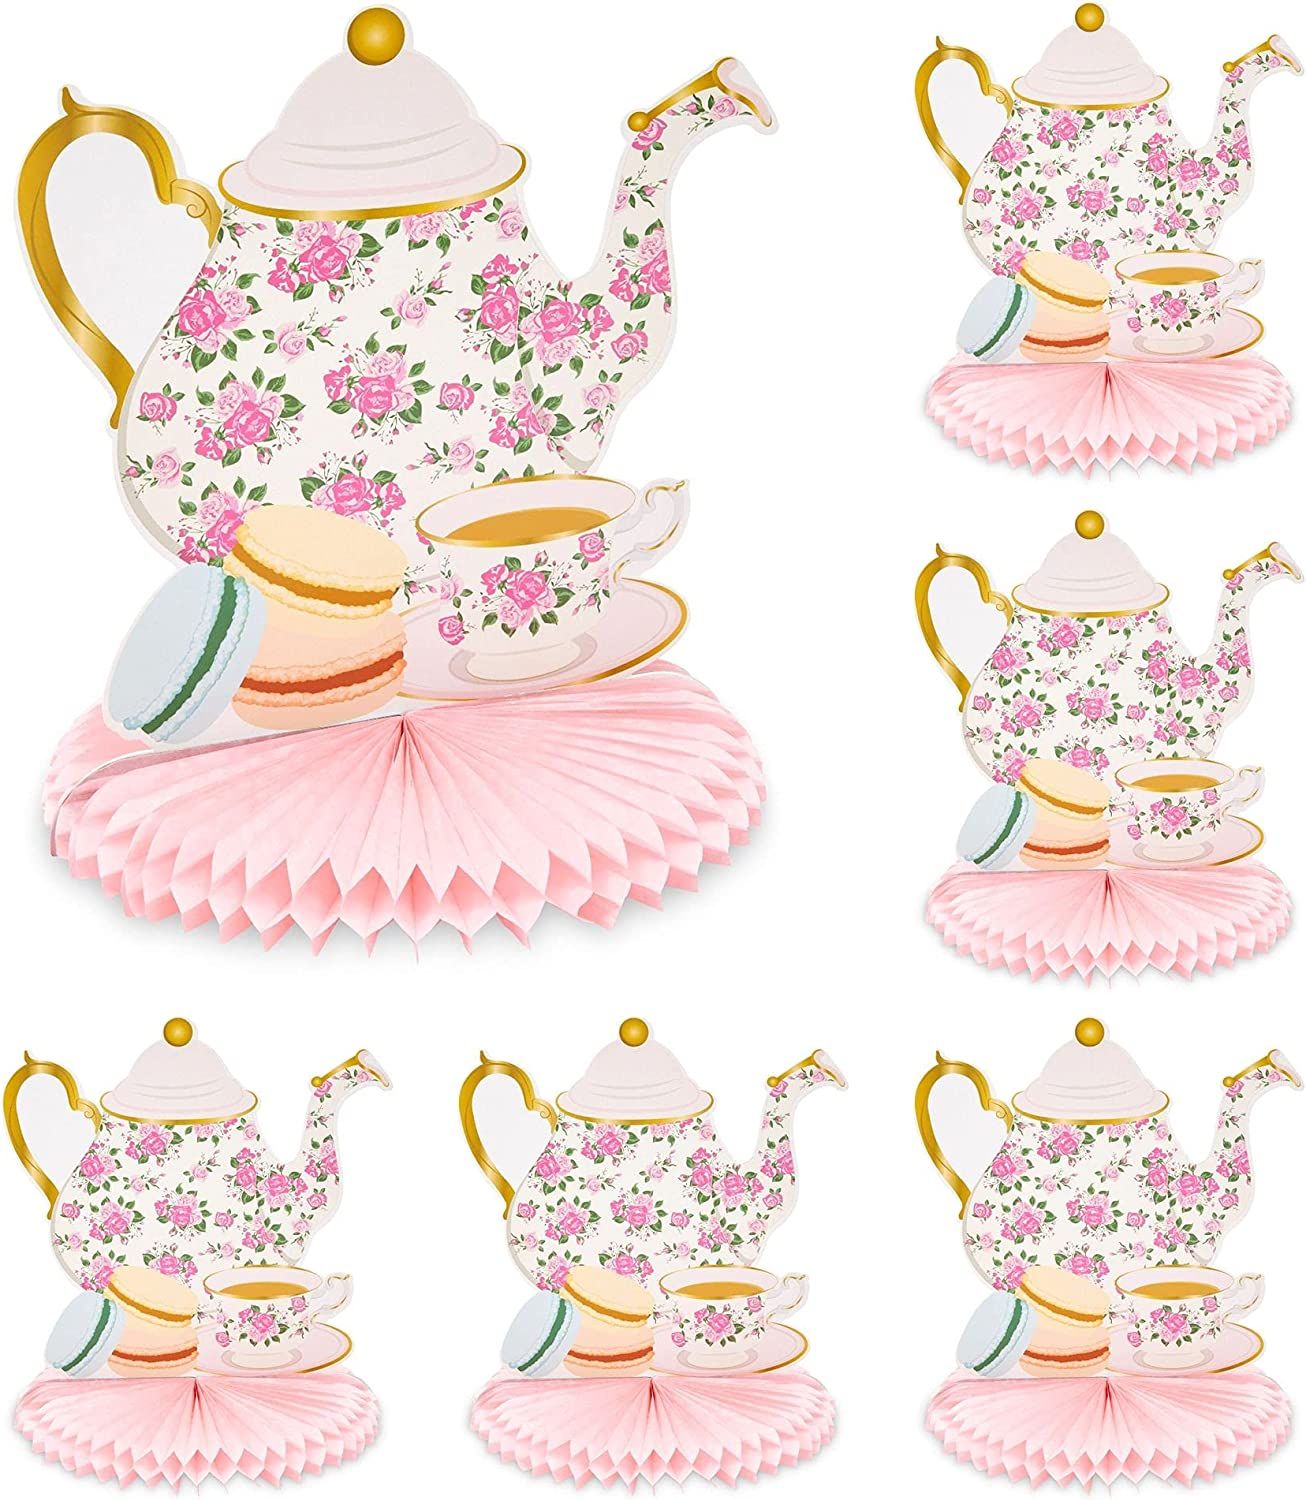 Teapot Honeycomb Centerpieces for Kids Tea Party Birthday (9.8 x 11 in, 6 Pack)